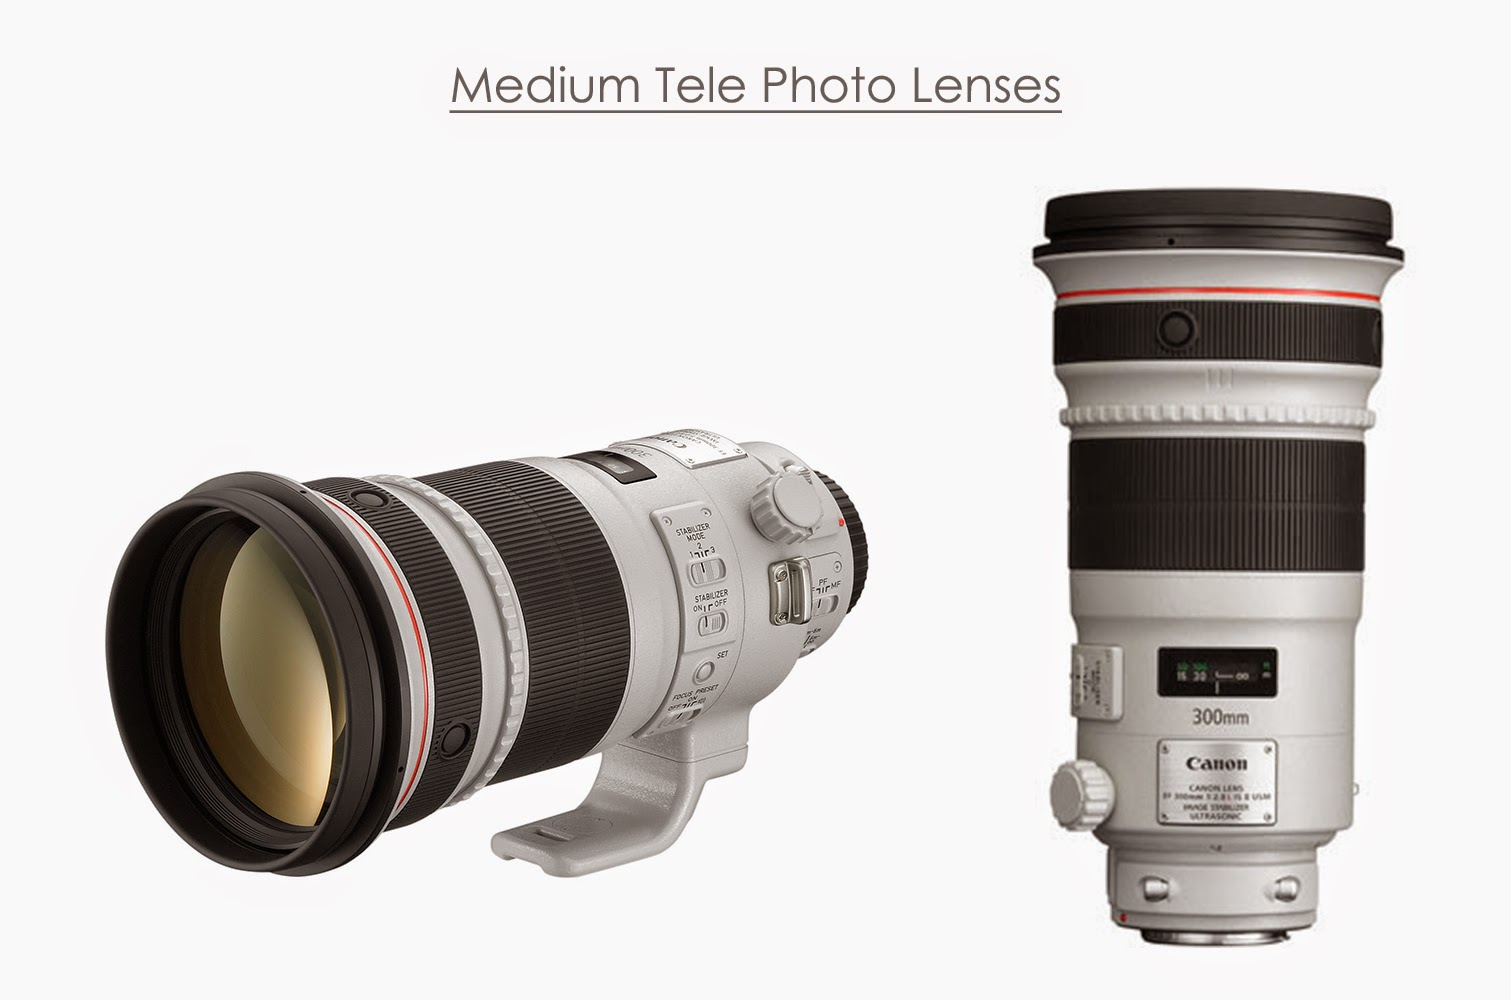 Medium Tele Photo Lenses